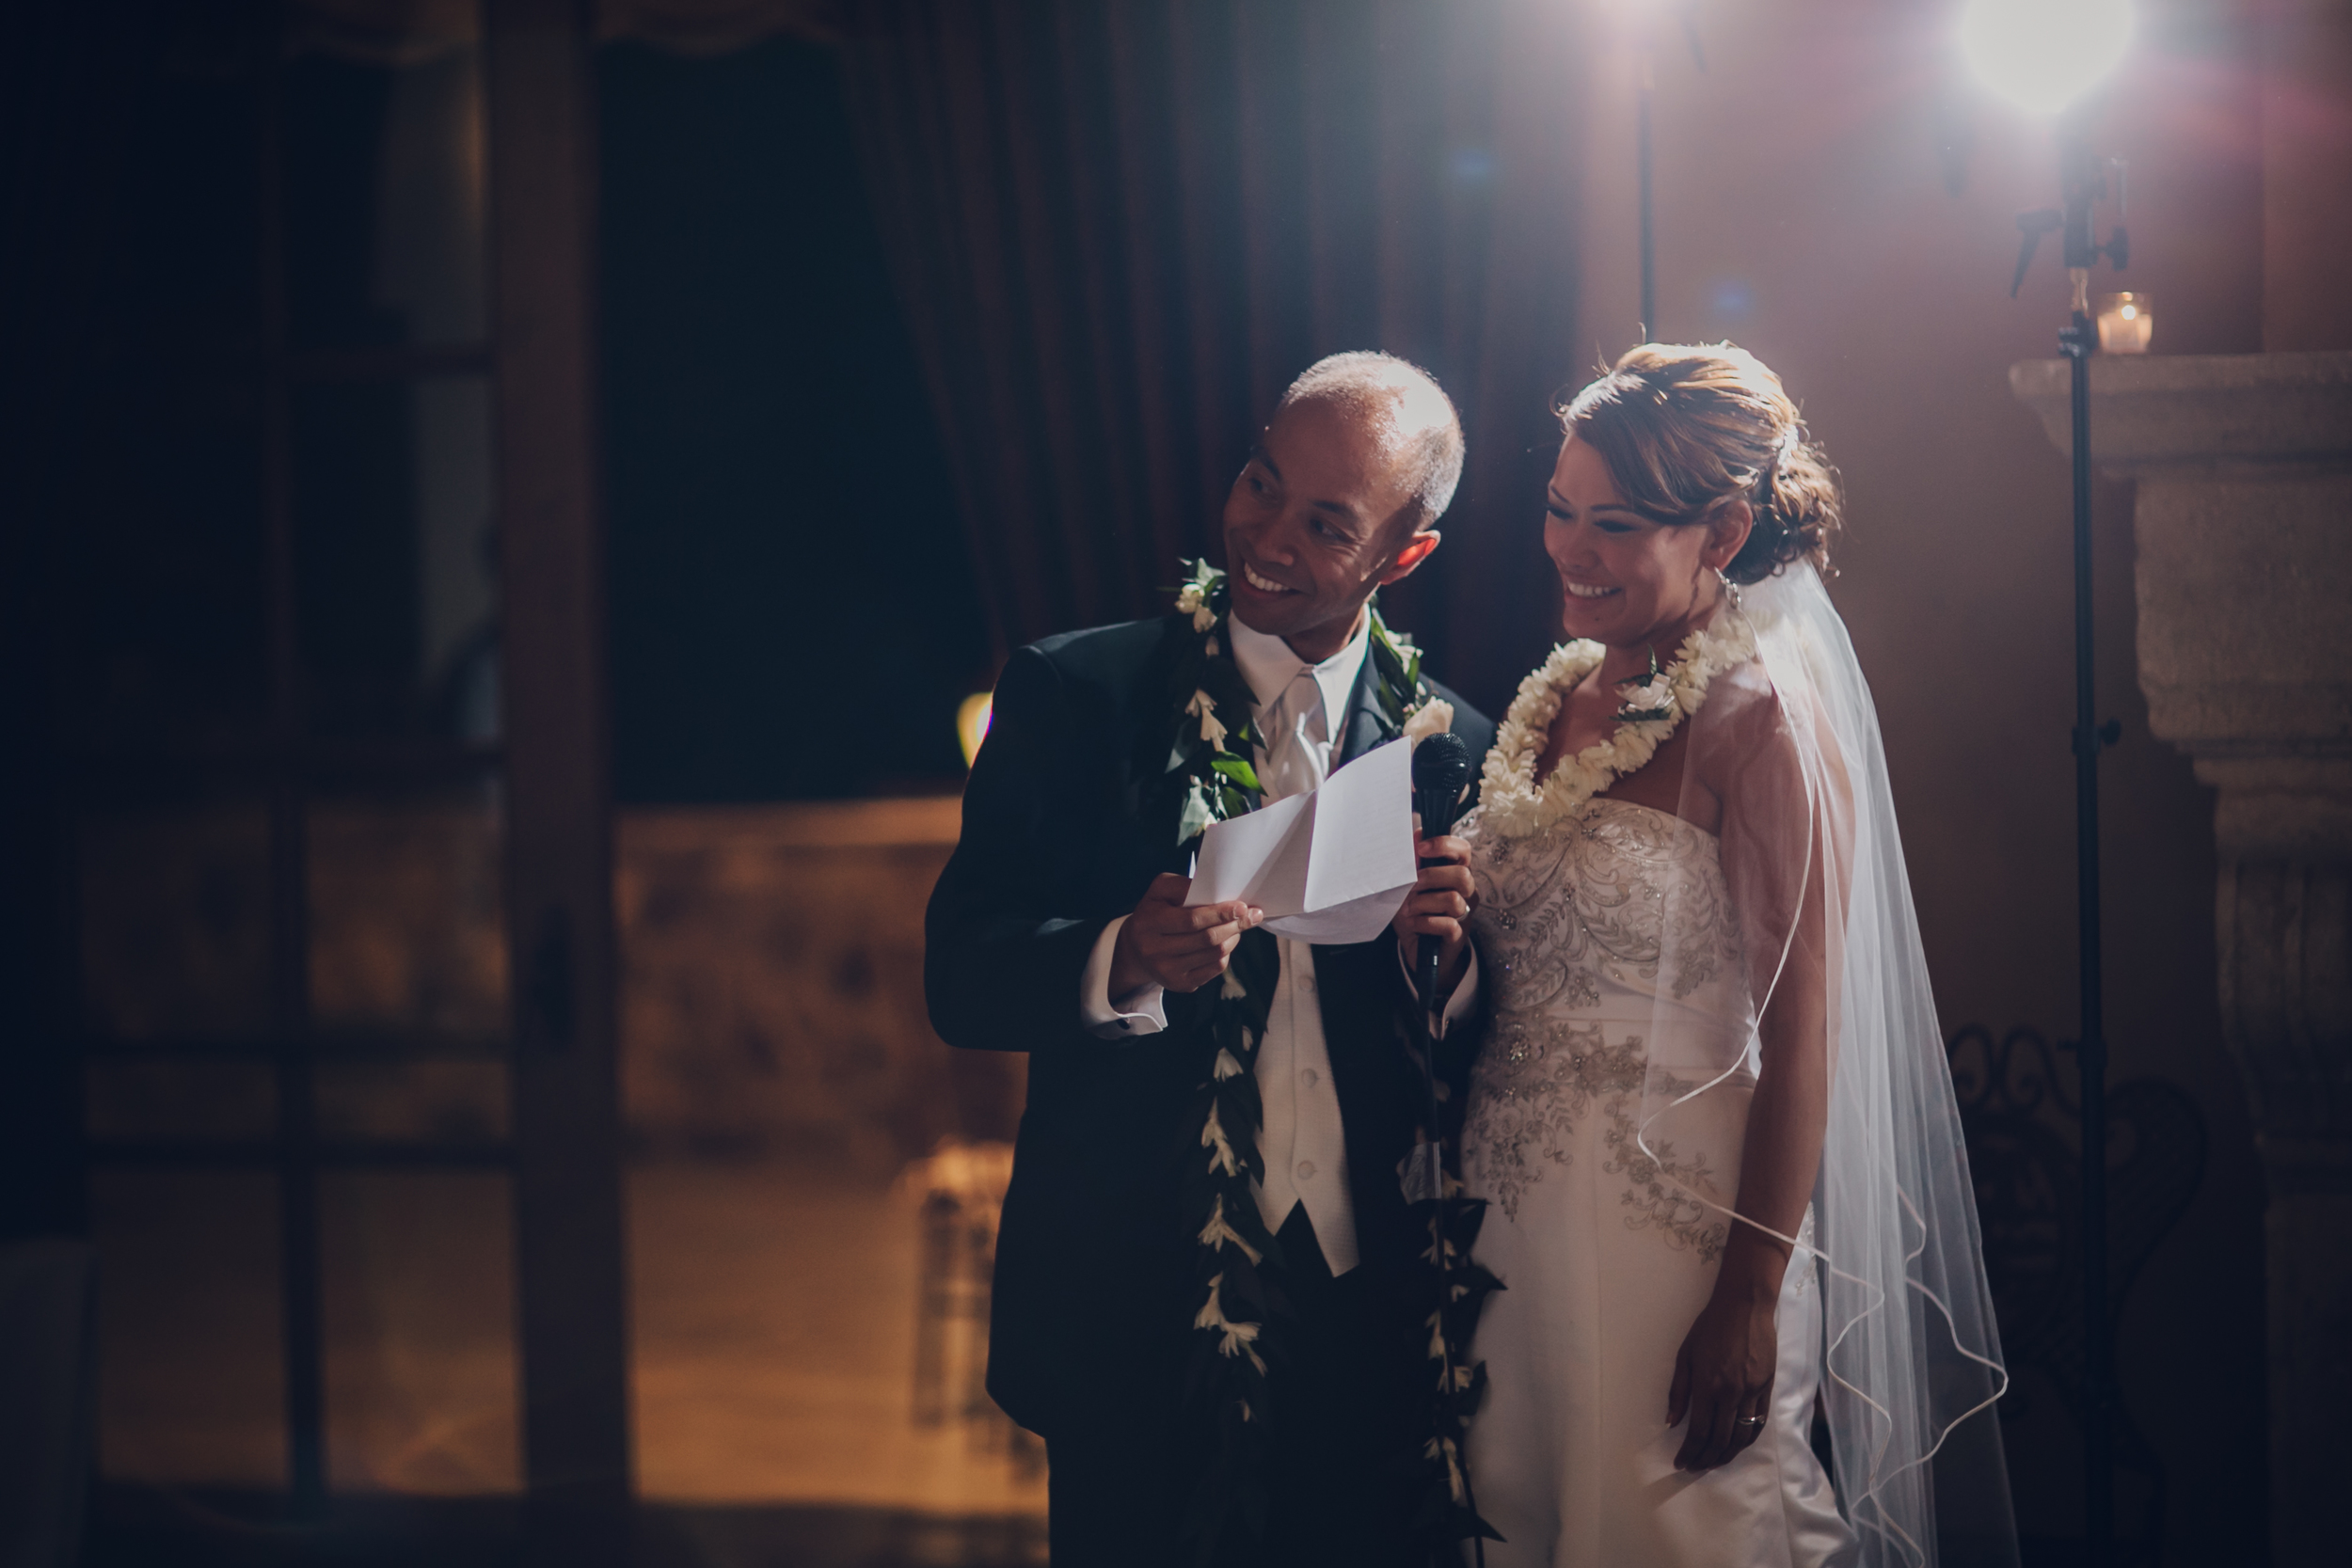 Shiela + Lester's Wedding 9-30-15 406.jpg